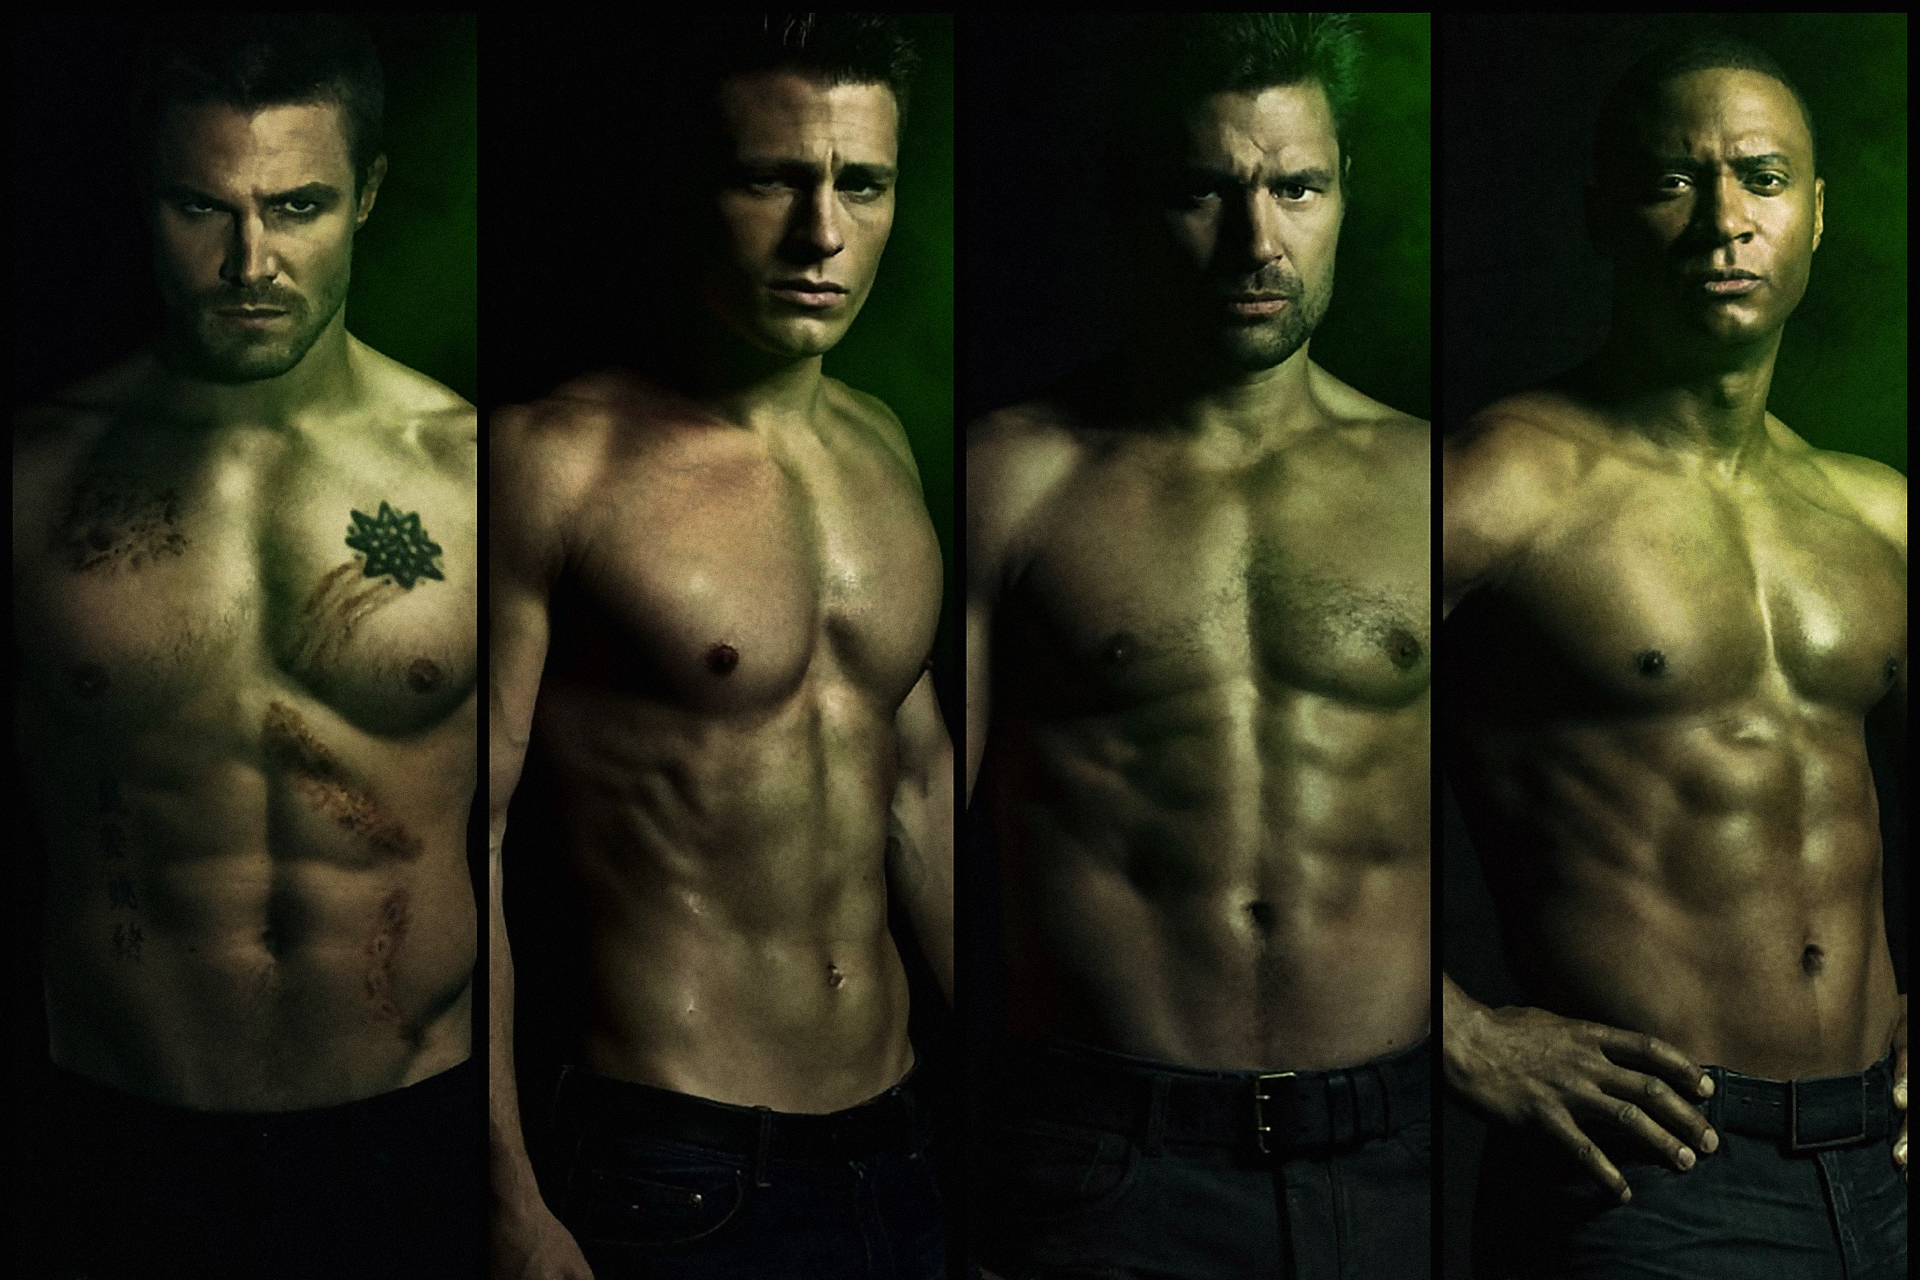 Arrow season 2 new wallpapers Movie Wallpapers 1920x1280